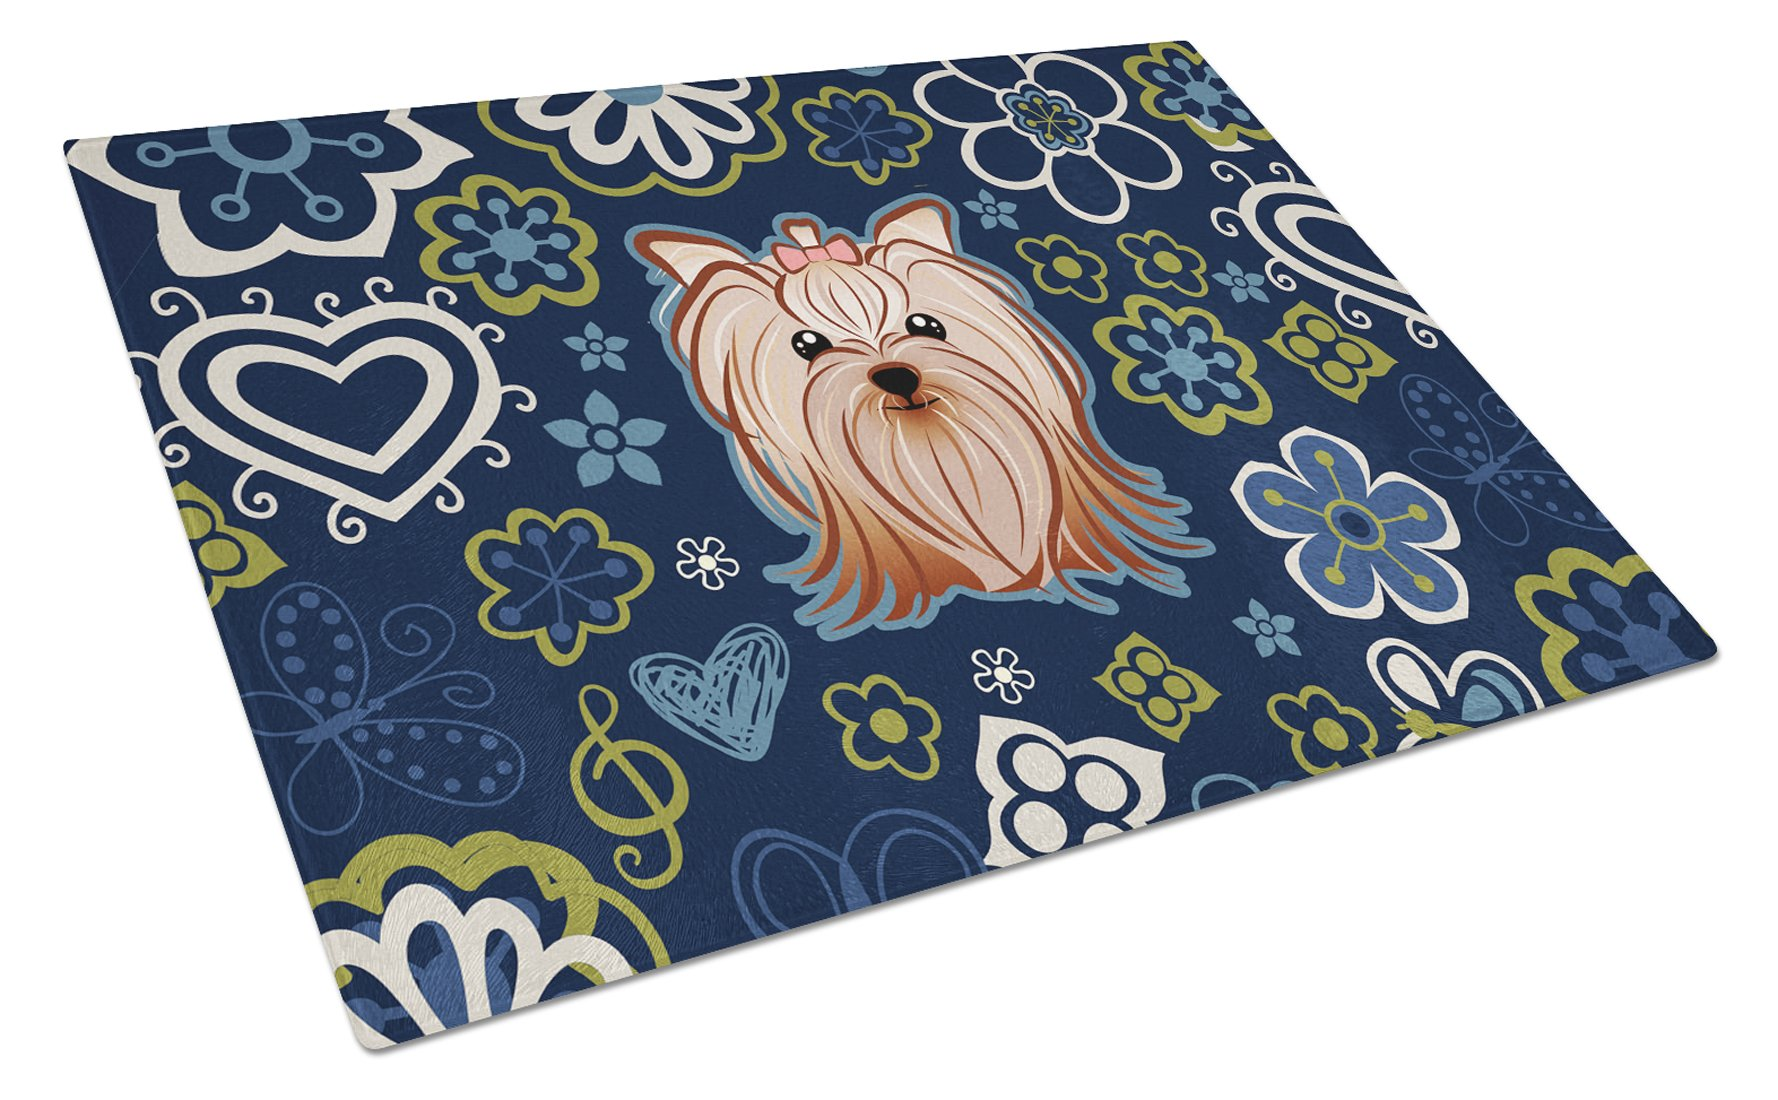 Blue Flowers Yorkie Yorkishire Terrier Glass Cutting Board Large BB5055LCB by Caroline's Treasures